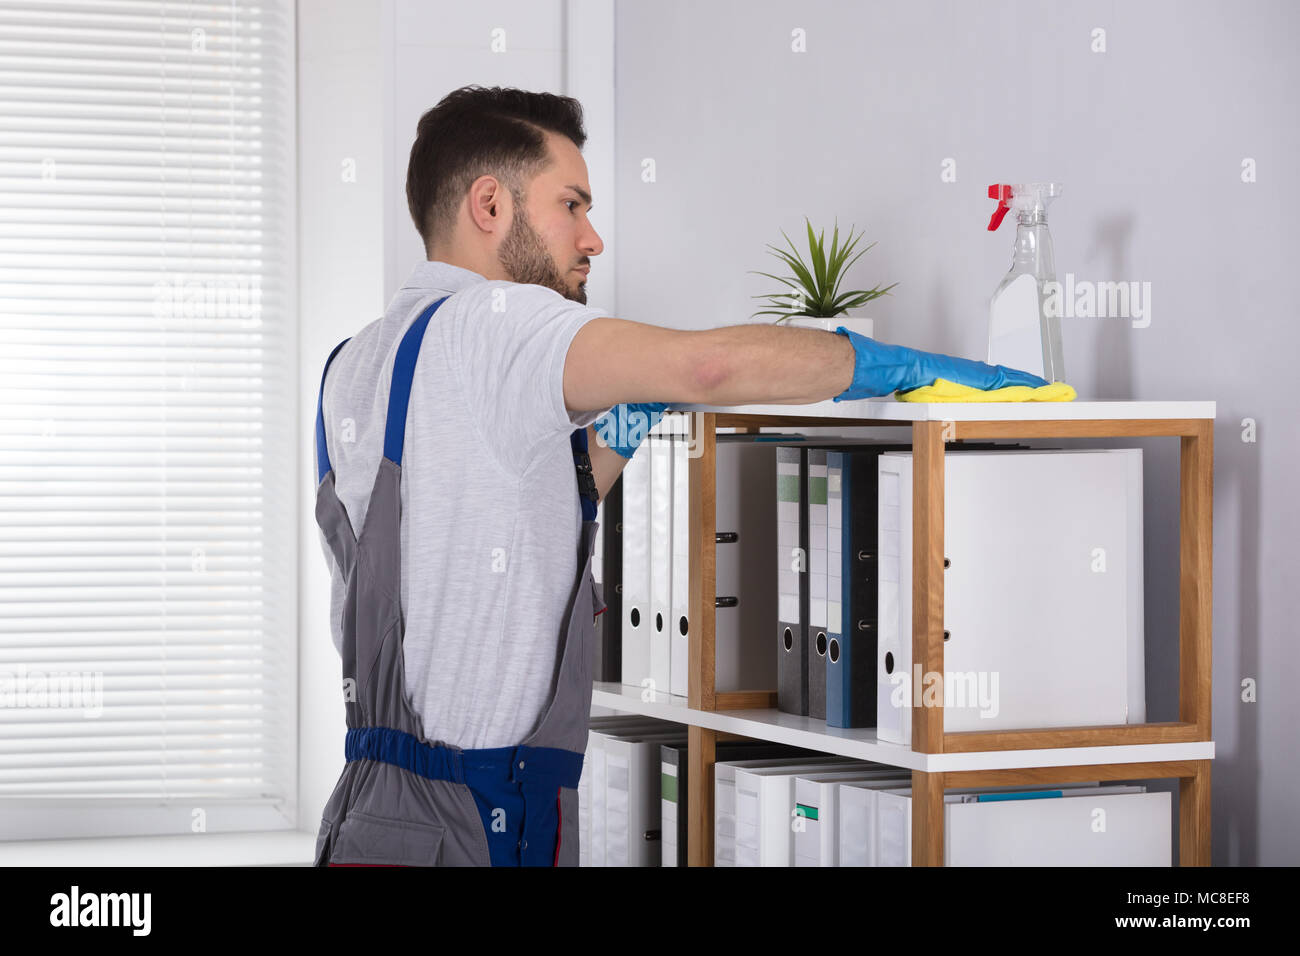 Close-up Of A Young Male Cleaner Cleaning Shelf At Workplace Stock Photo